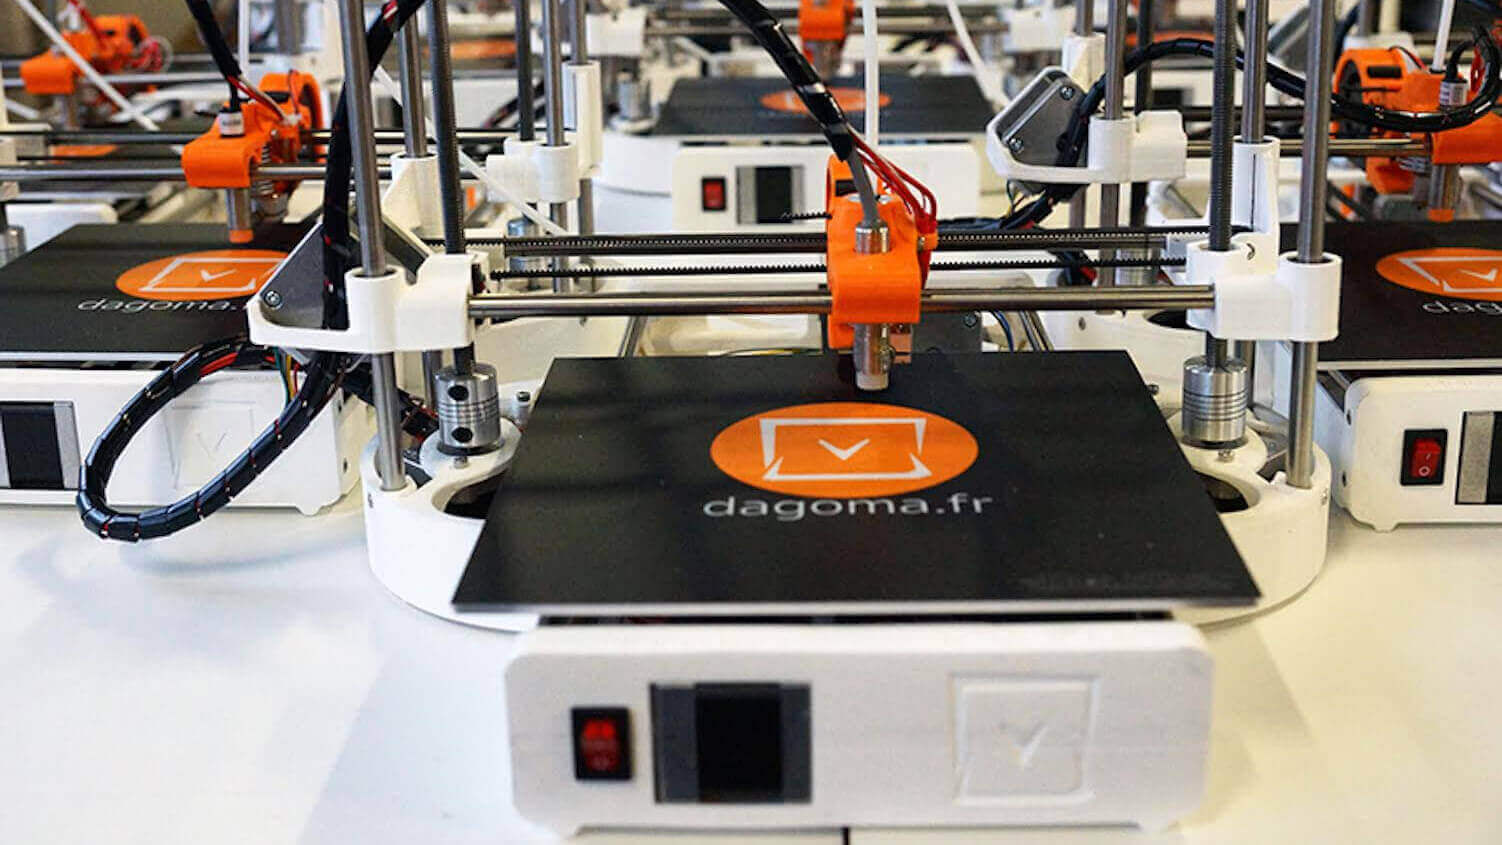 3D Printing Startup Dagoma Receives €3m in Funding | All3DP